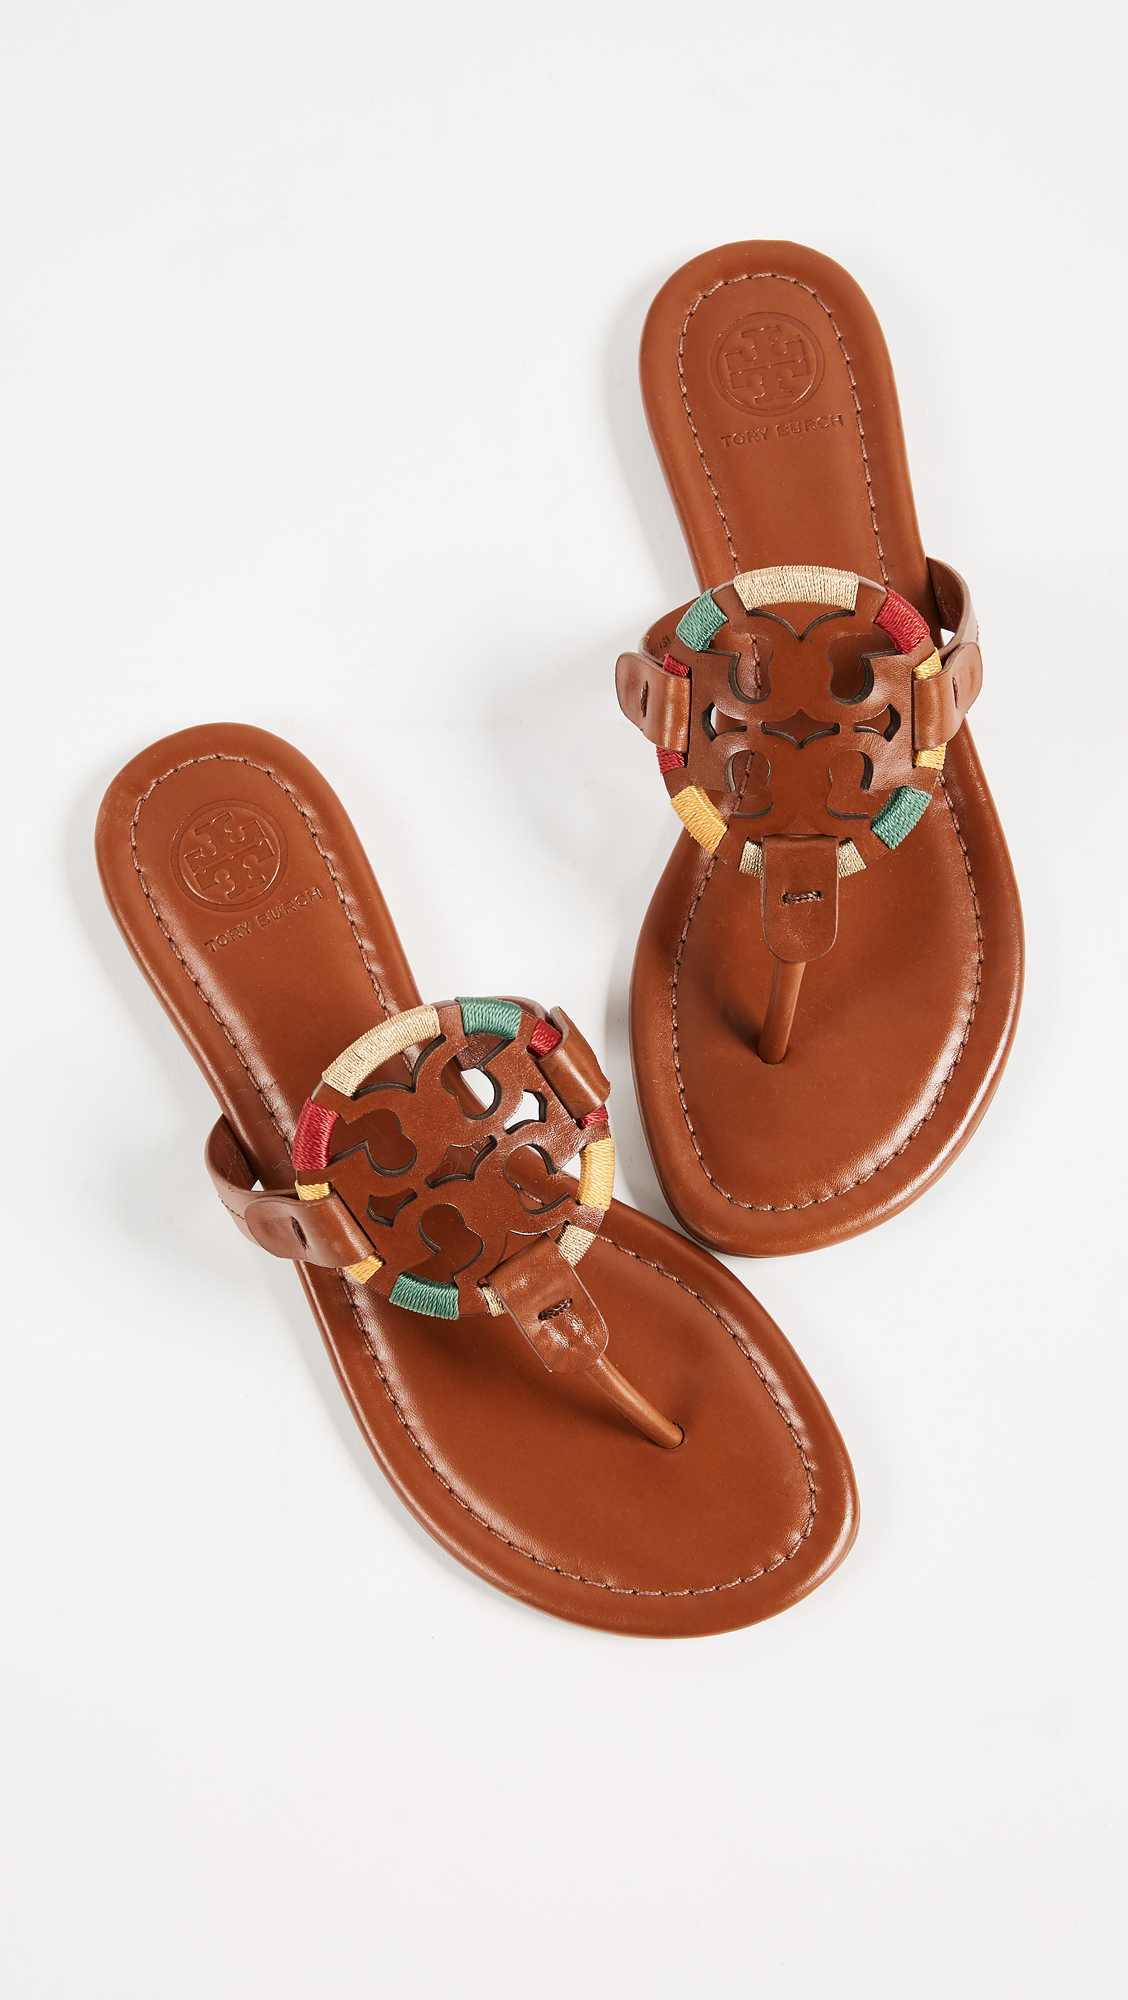 422b0fbf070b Tory Burch Miller Embroidered Sandals